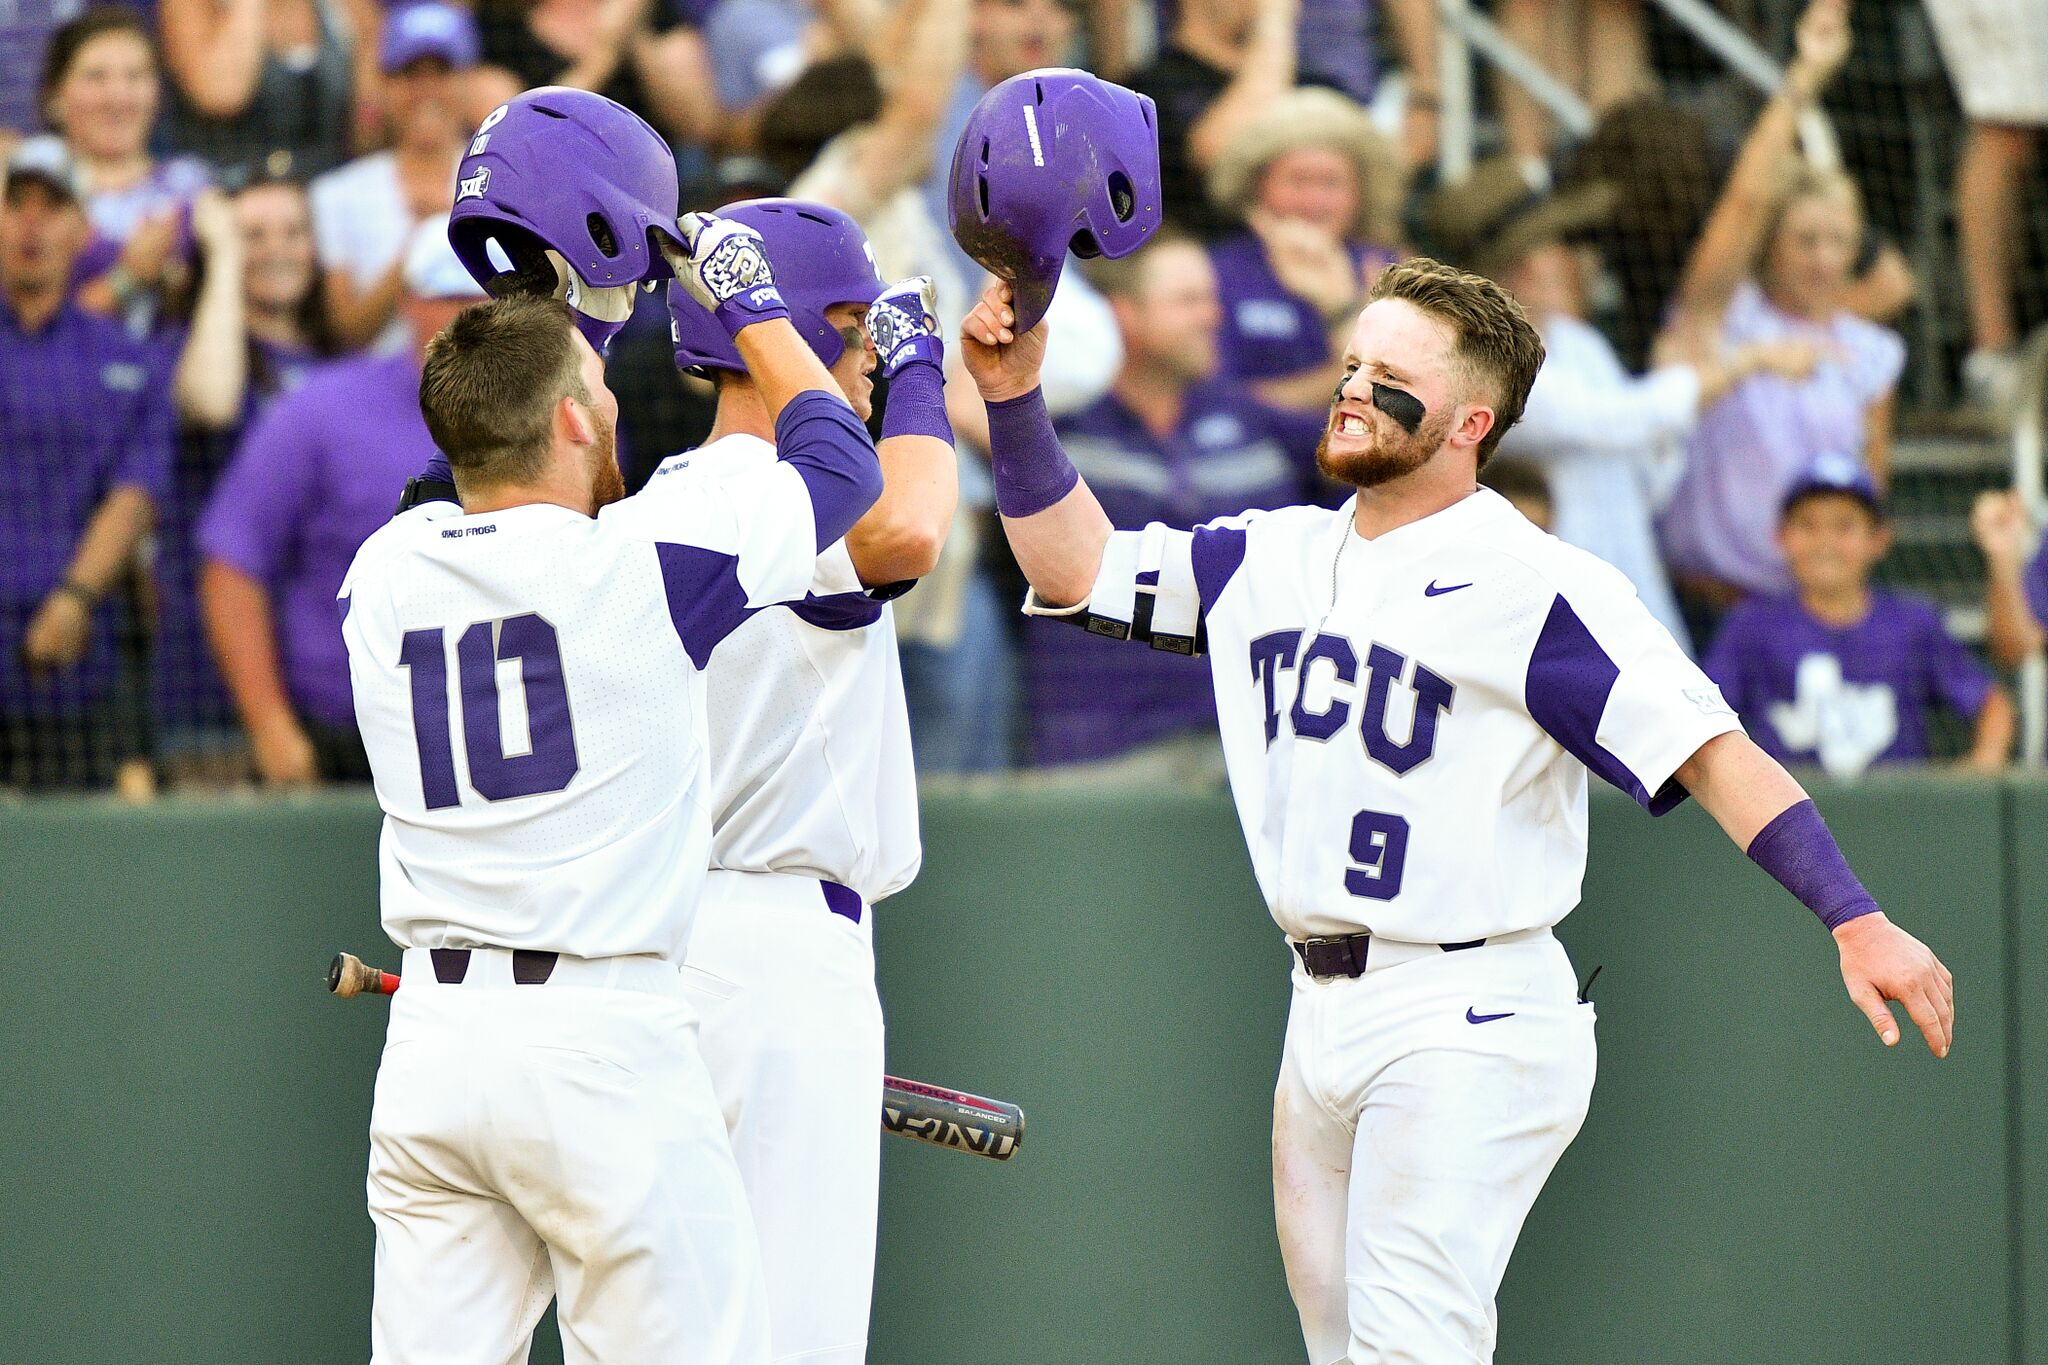 Skoug powers TCU to sweep of Missouri St, 4th straight CWS